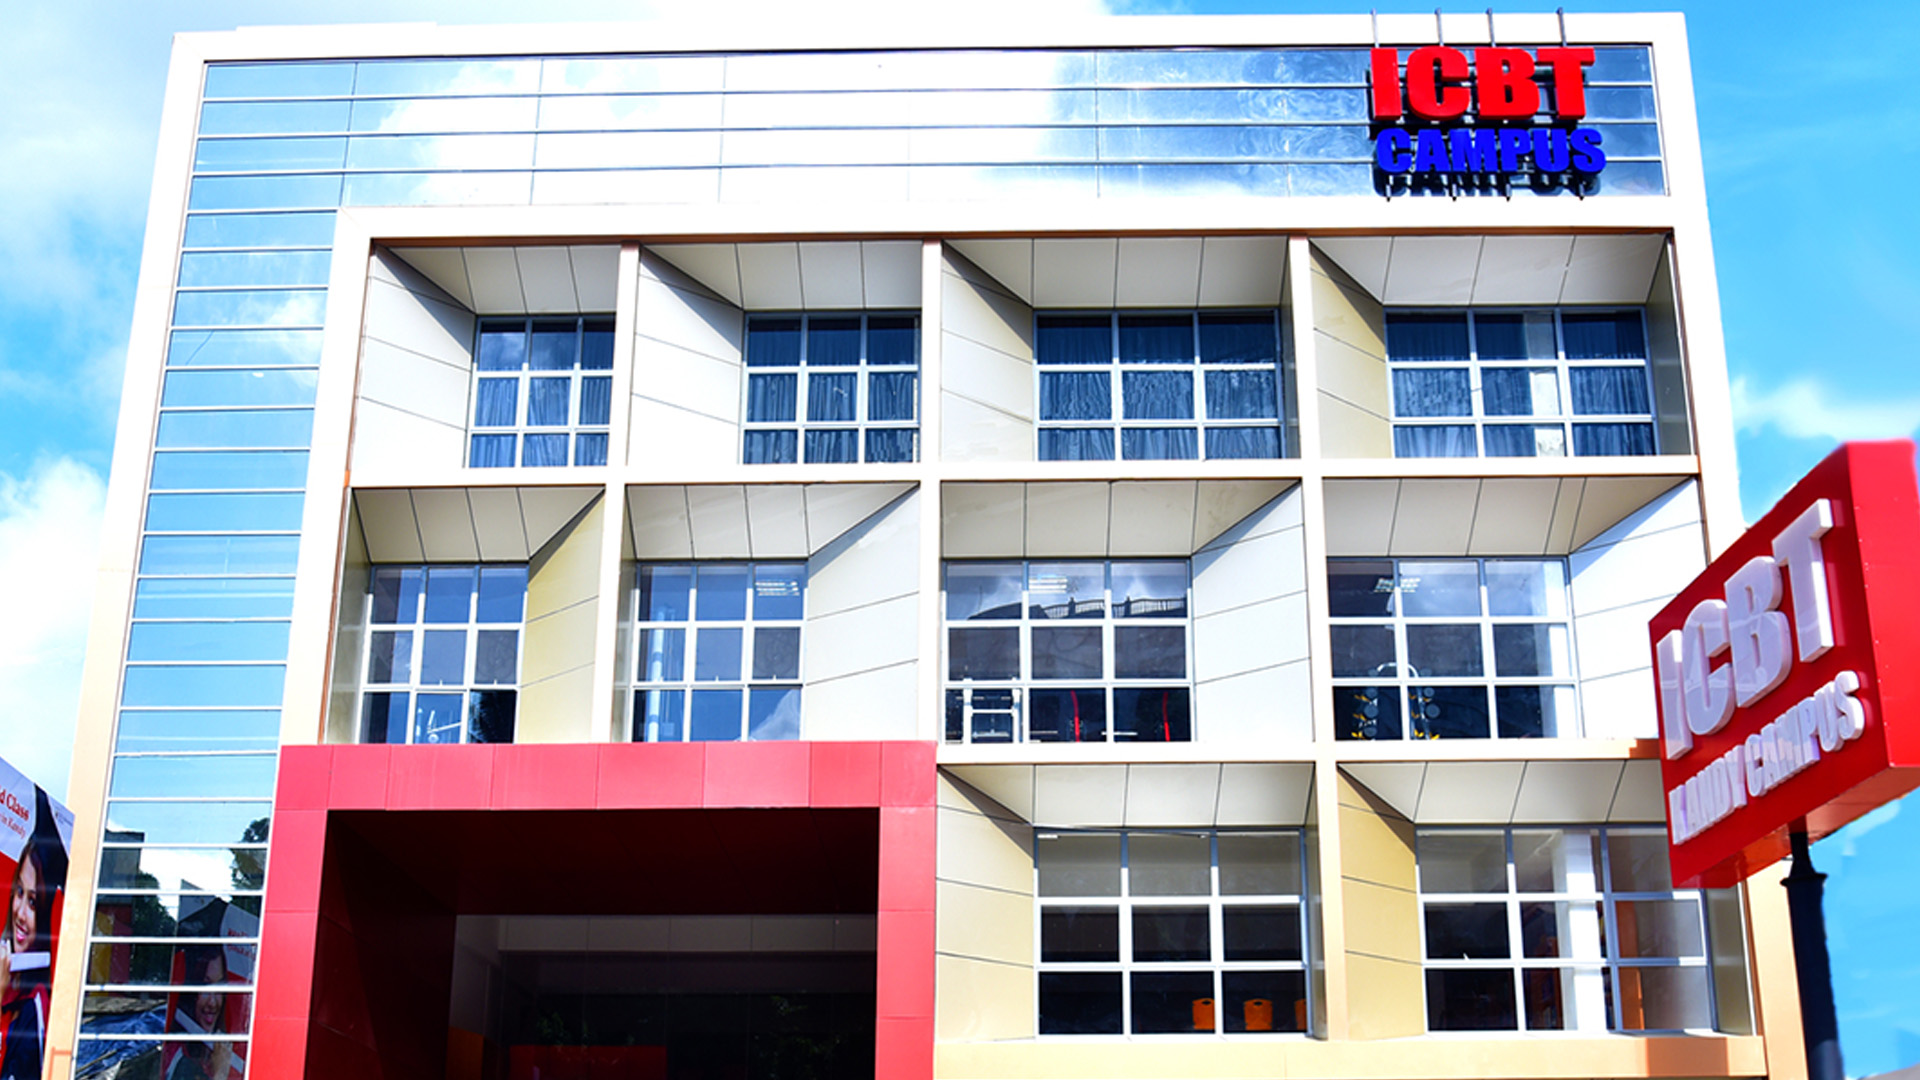 ICBT Kandy Campus